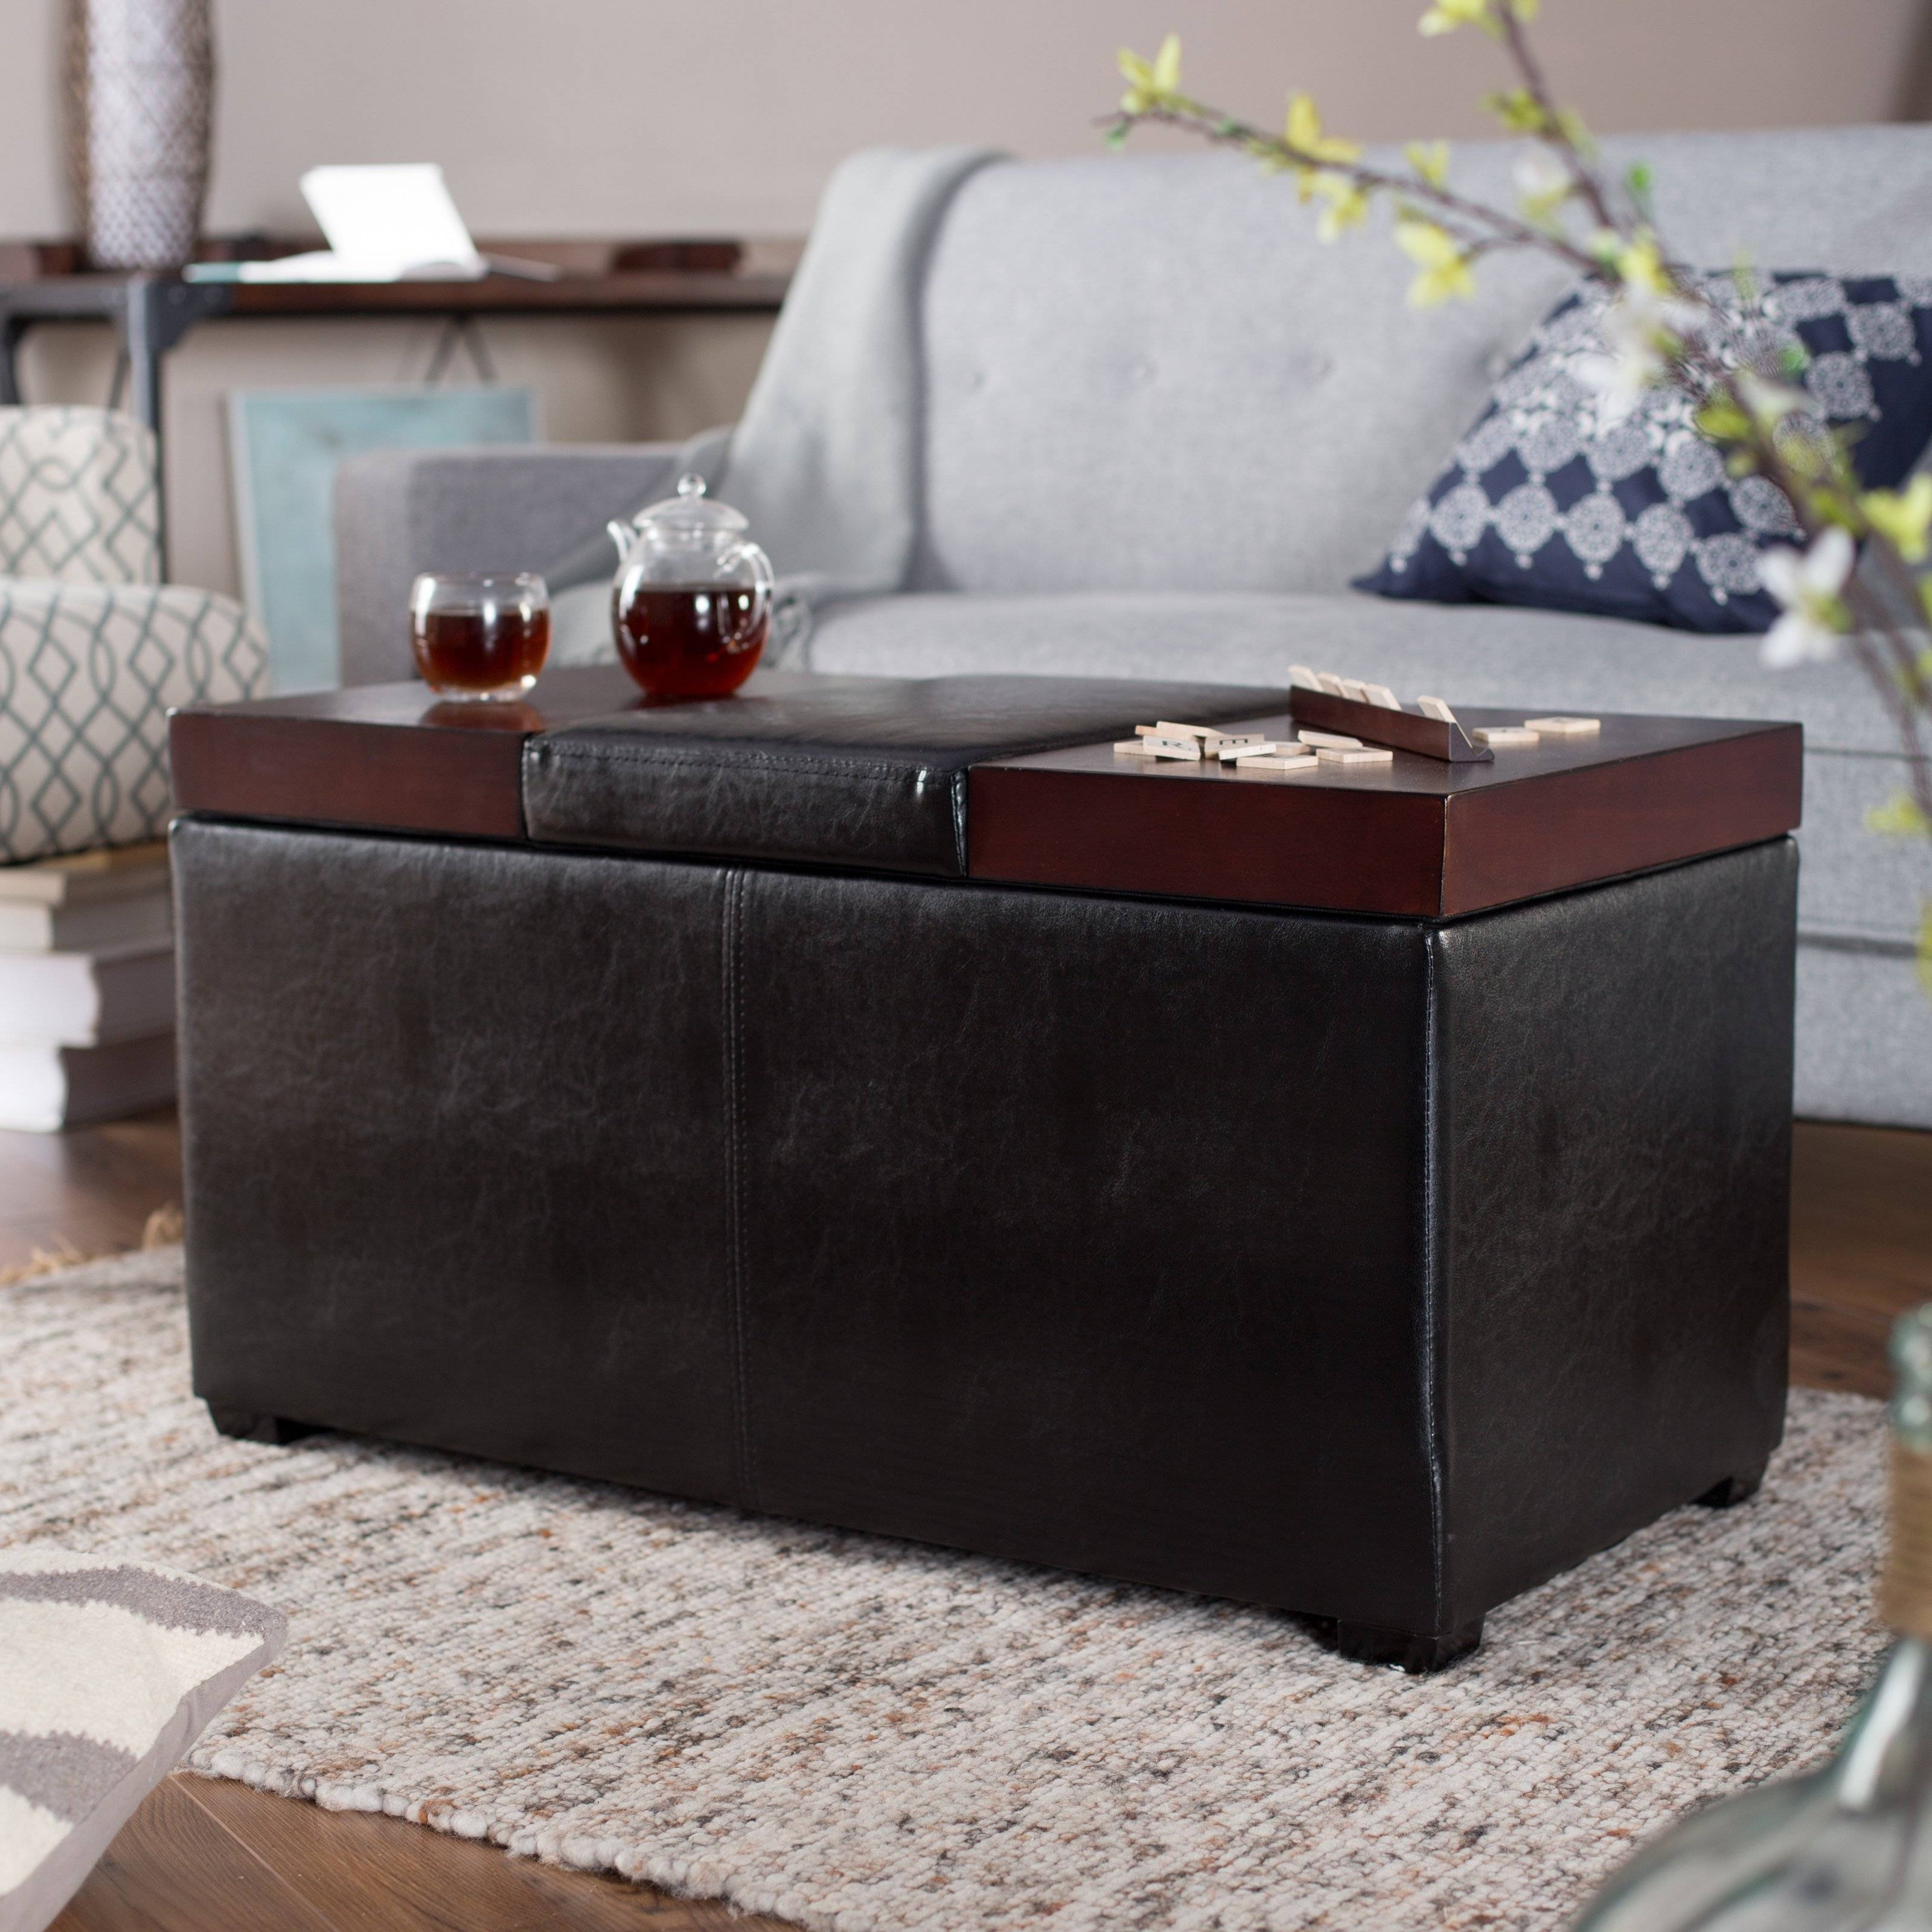 Ameriwood Home Carson Coffee Table, Espresso/silver - Walmart regarding Coffee Table And Tv Unit Sets (Image 2 of 30)